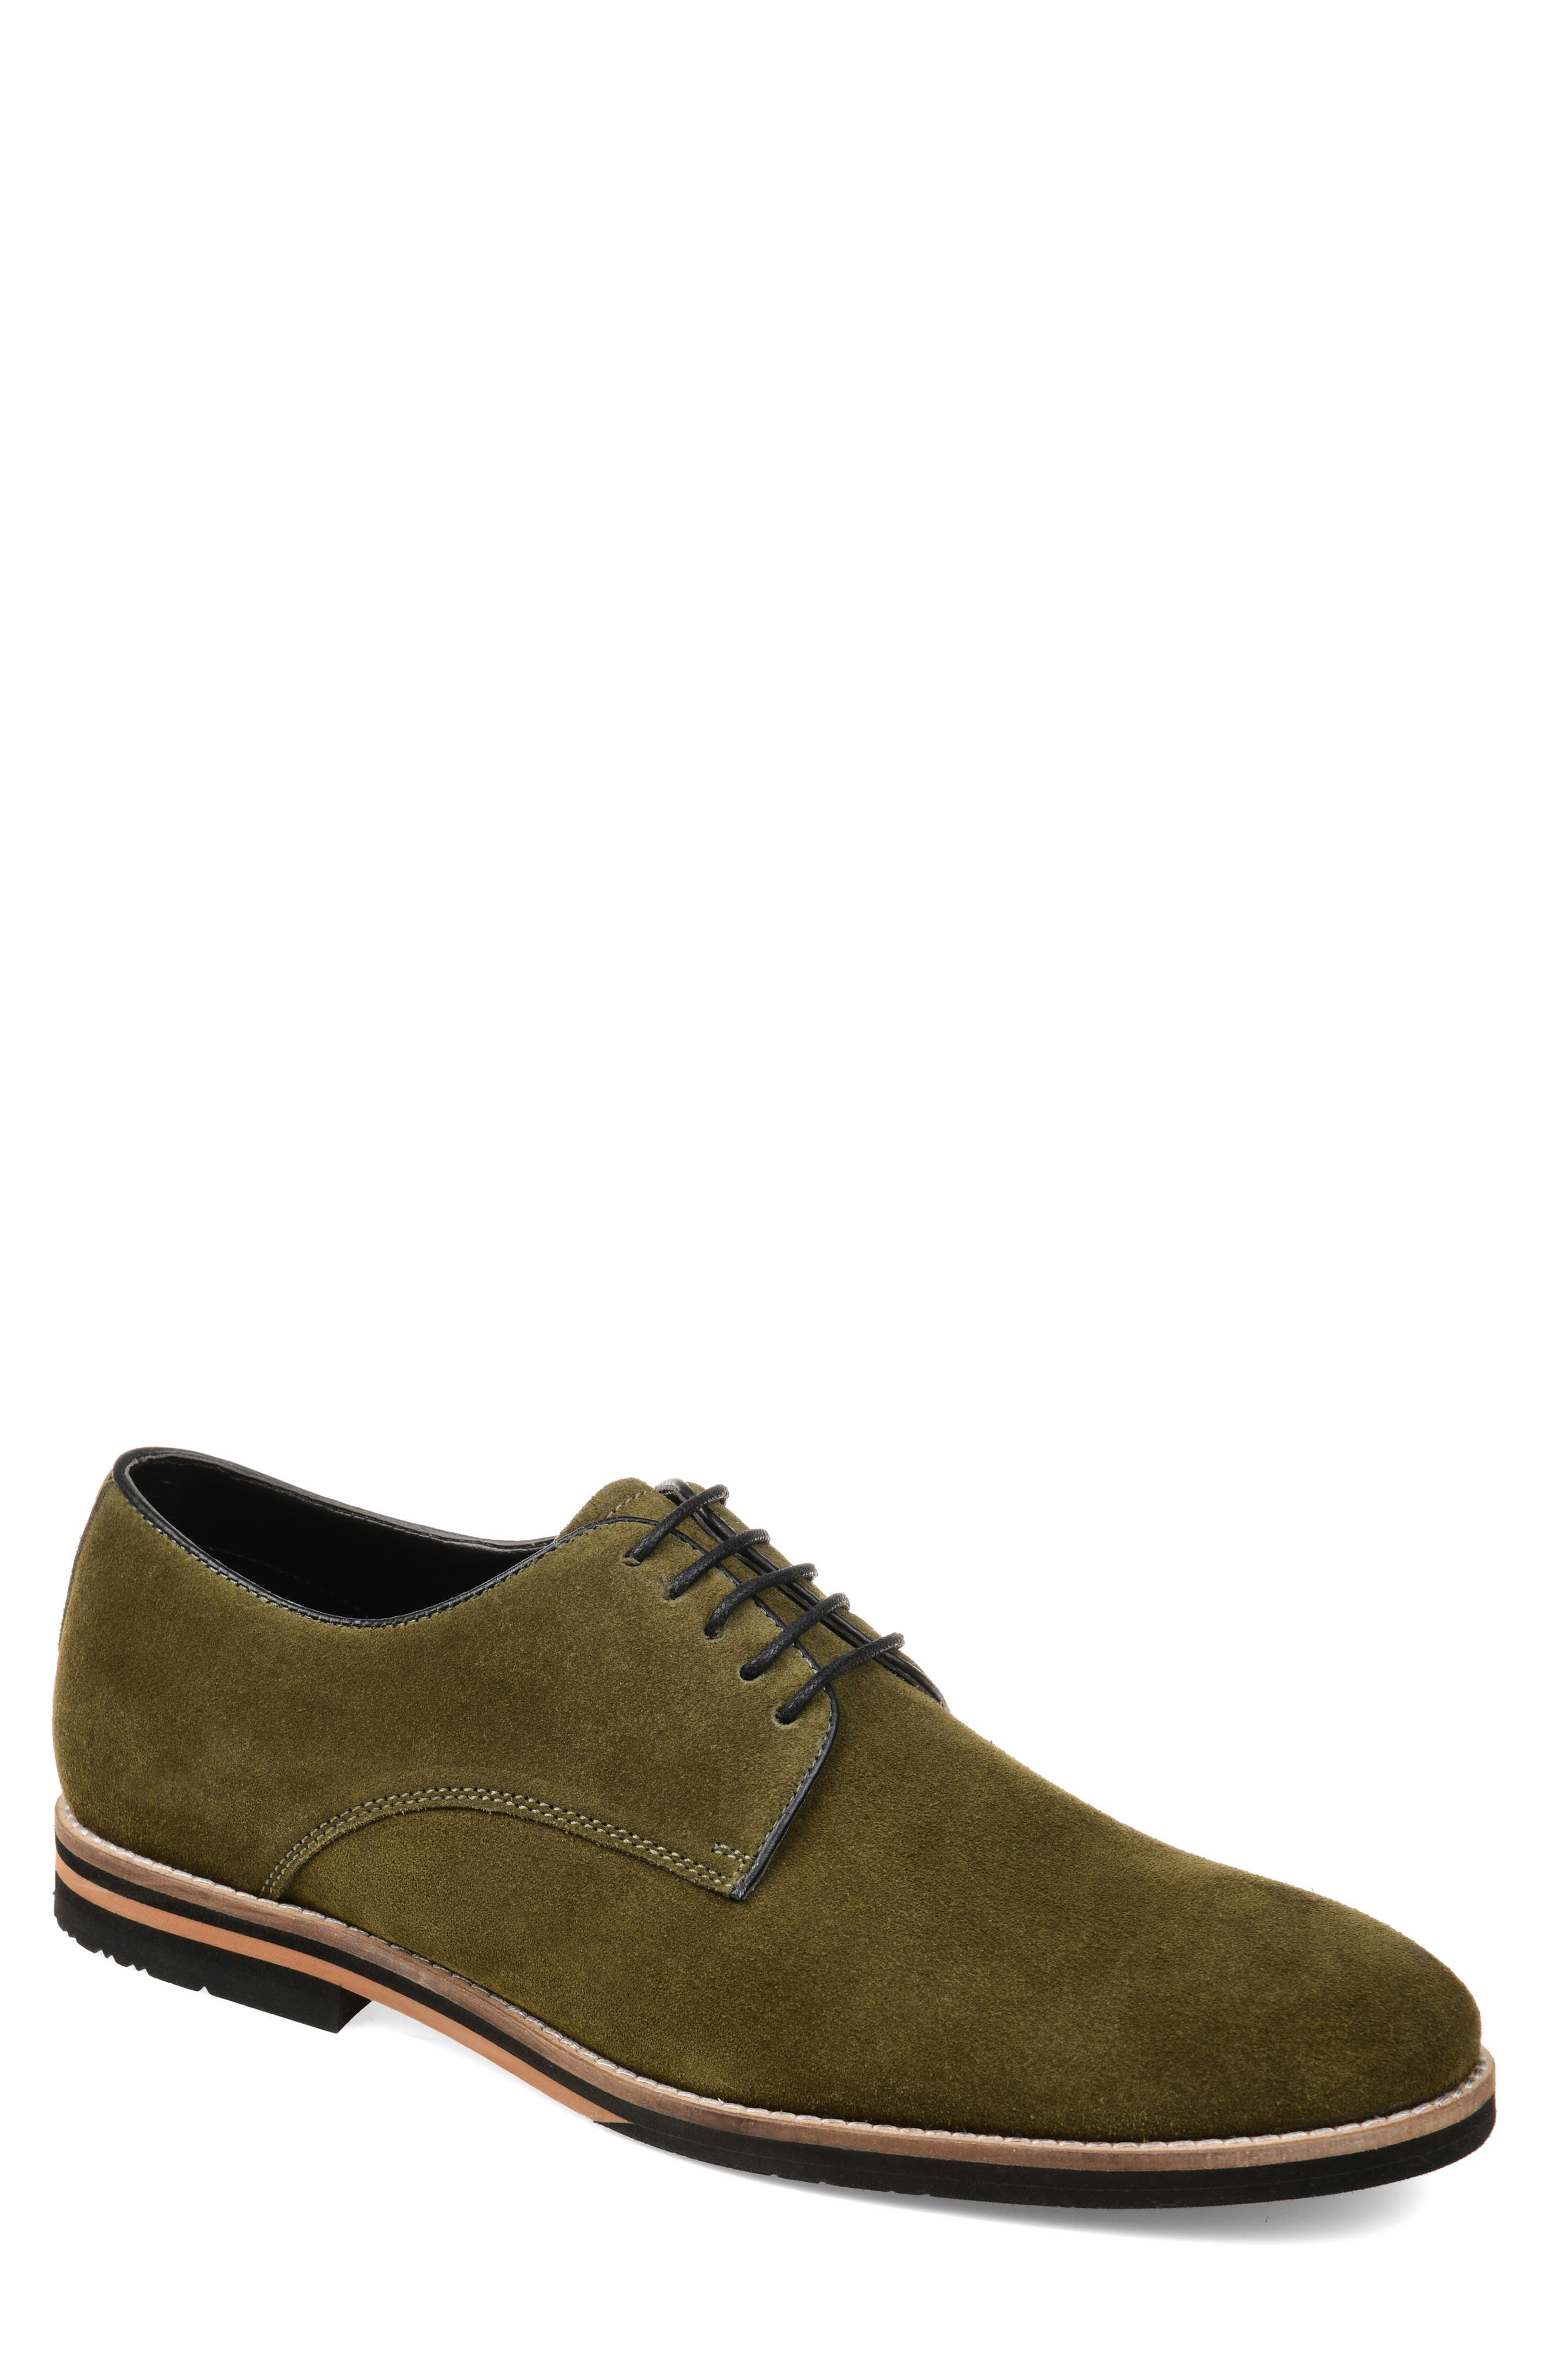 Clean lines and simple detailing bring easy-to-wear appeal to a wardrobe-staple derby crafted from soft suede and set on an EVA-cushioned sole. Style Name: Thomas & Vine Gunner Plain Toe Derby (Men). Style Number: 5715652. Available in stores.